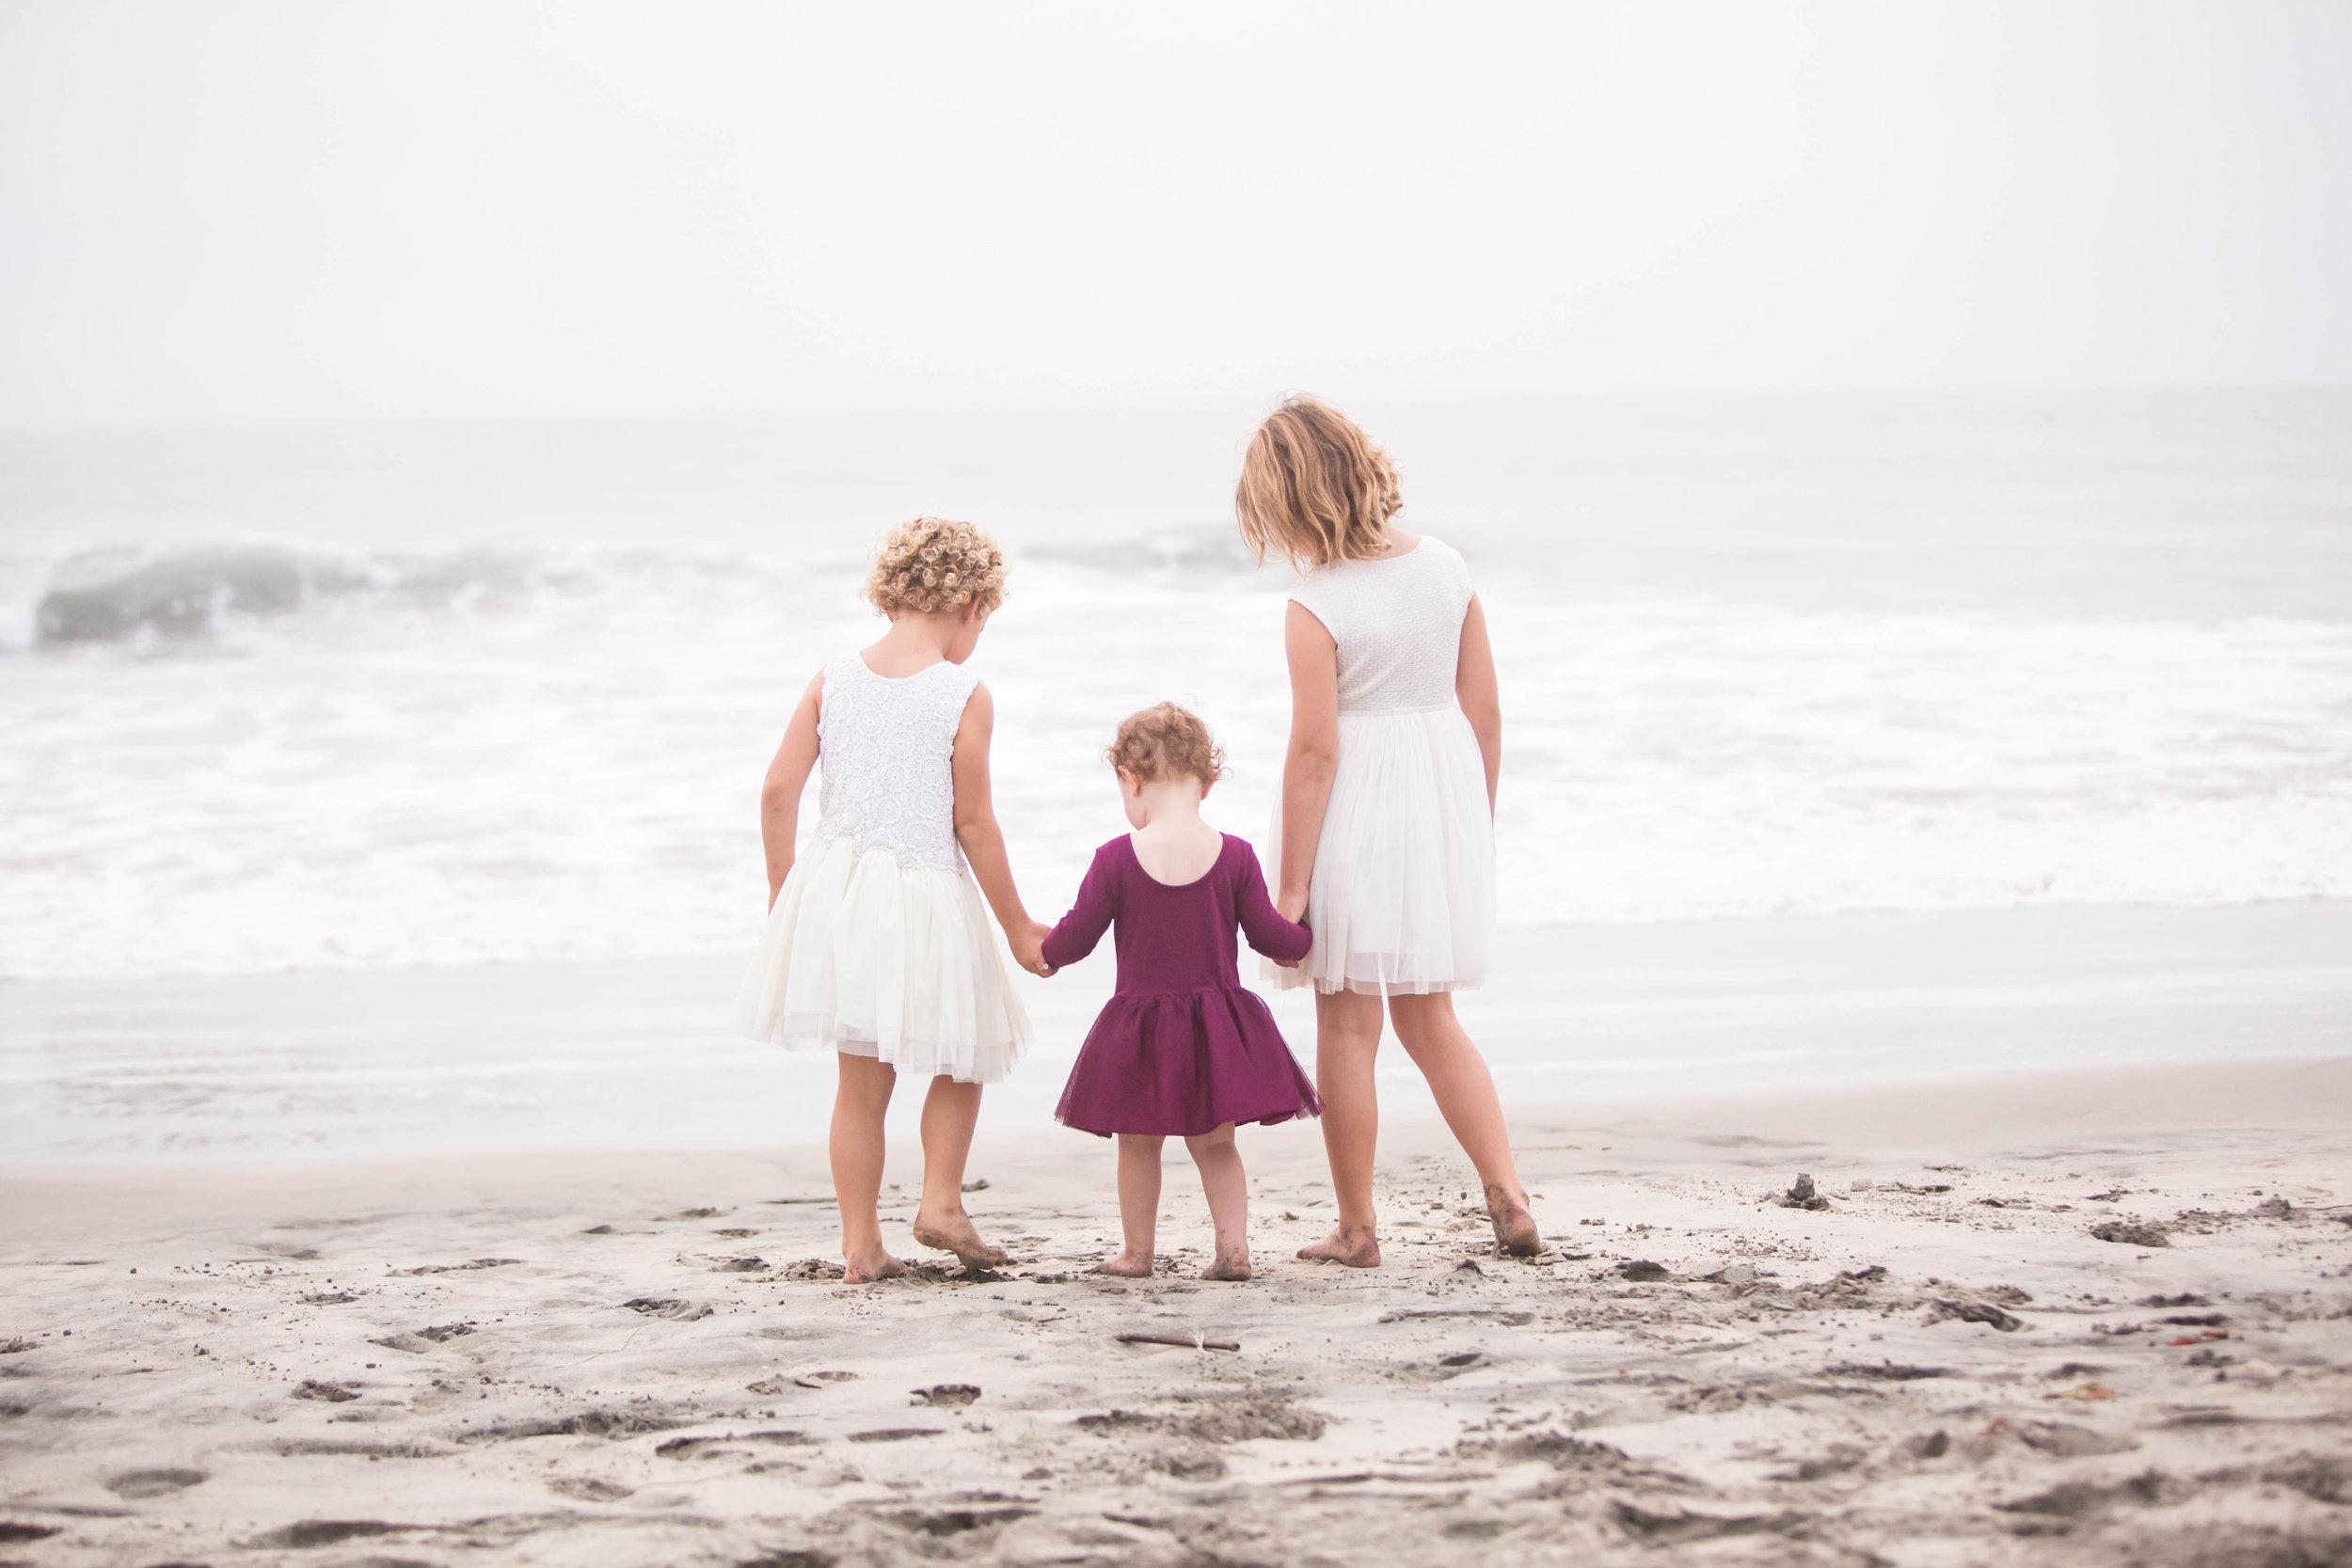 Marble_Falls_Family_Photographer_Jenna_Petty_14.jpg